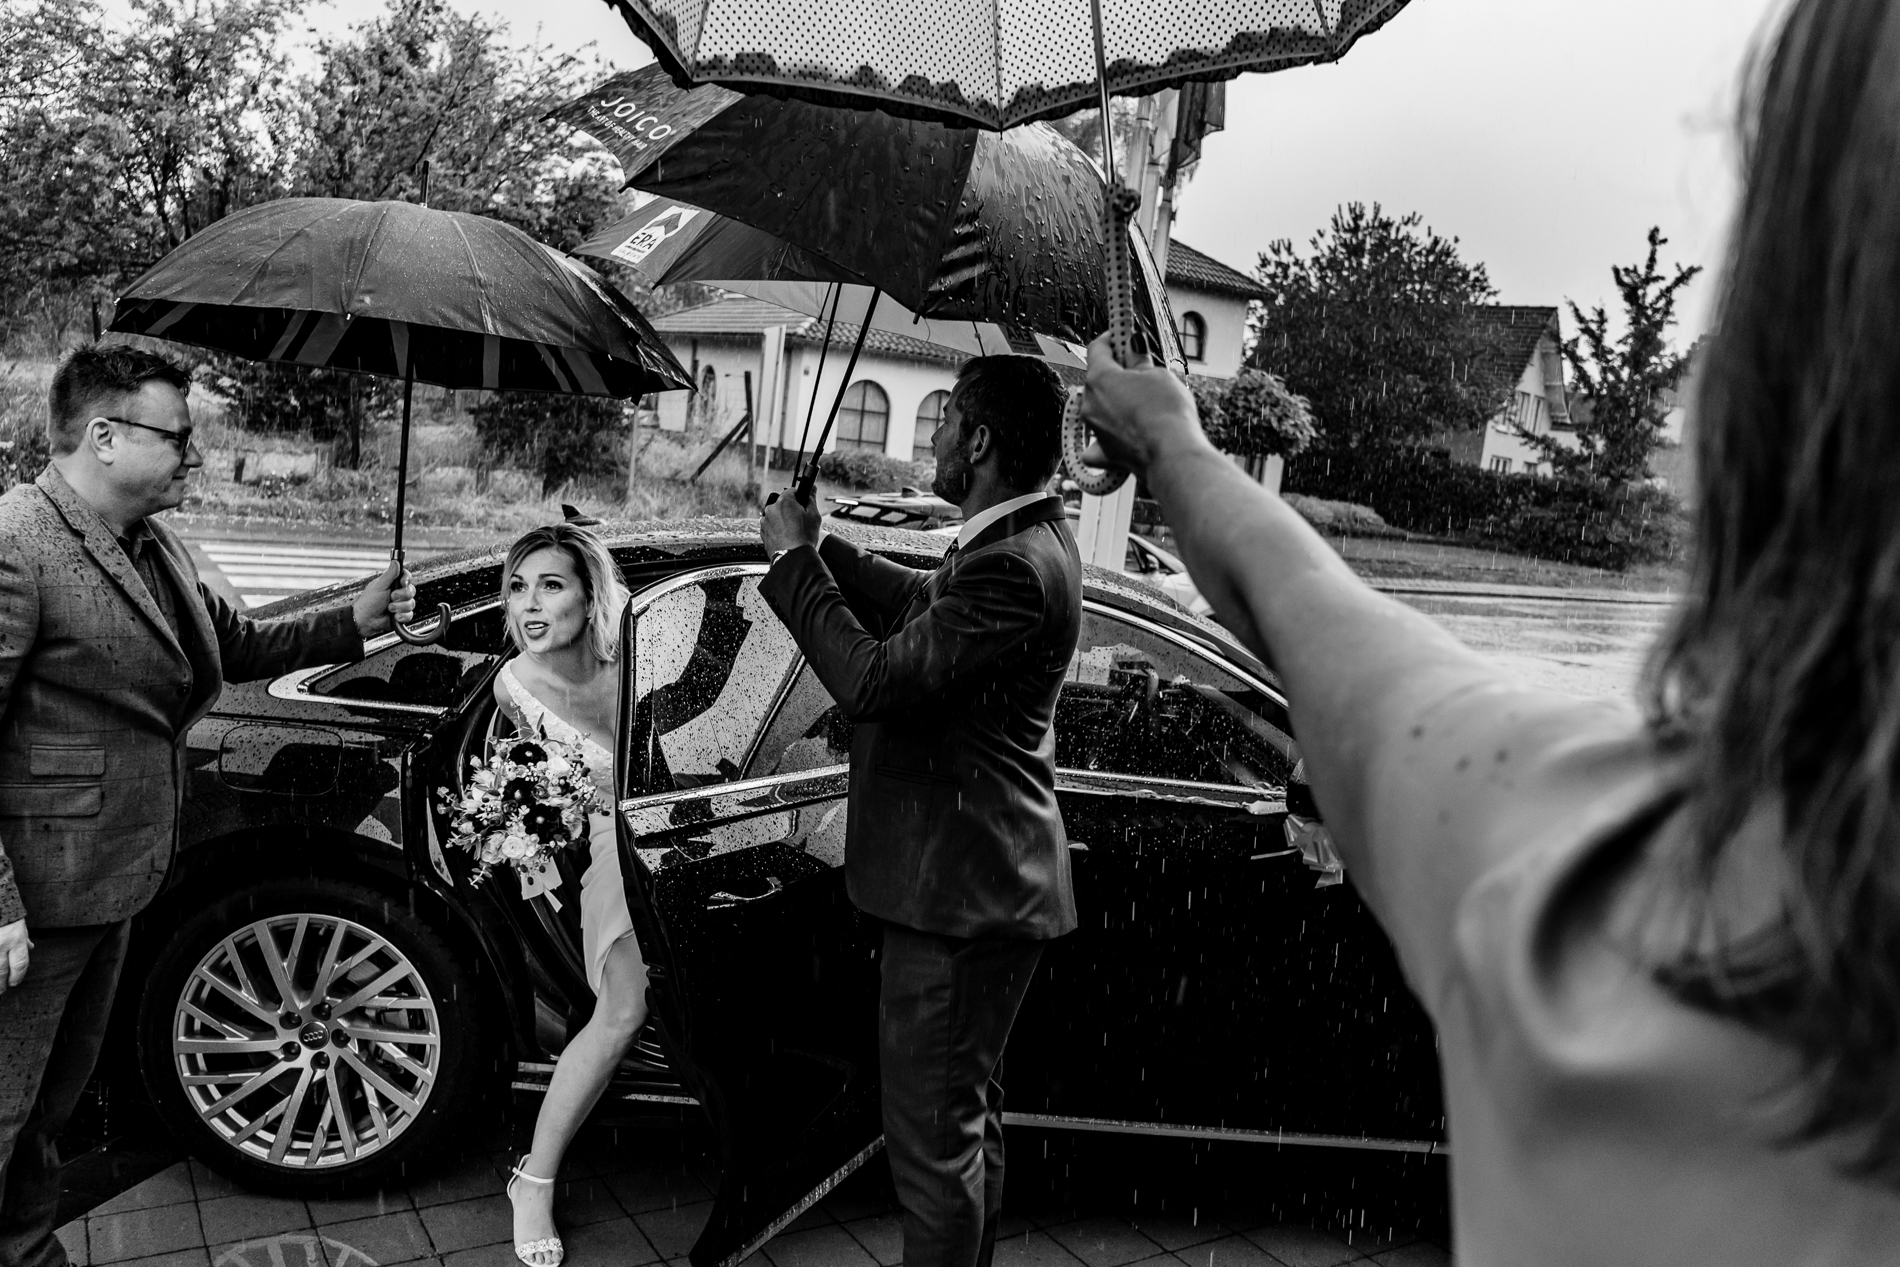 Guests hold umbrellas over the bride as she exits her vehicle | Photography in the Rain on Wedding Day